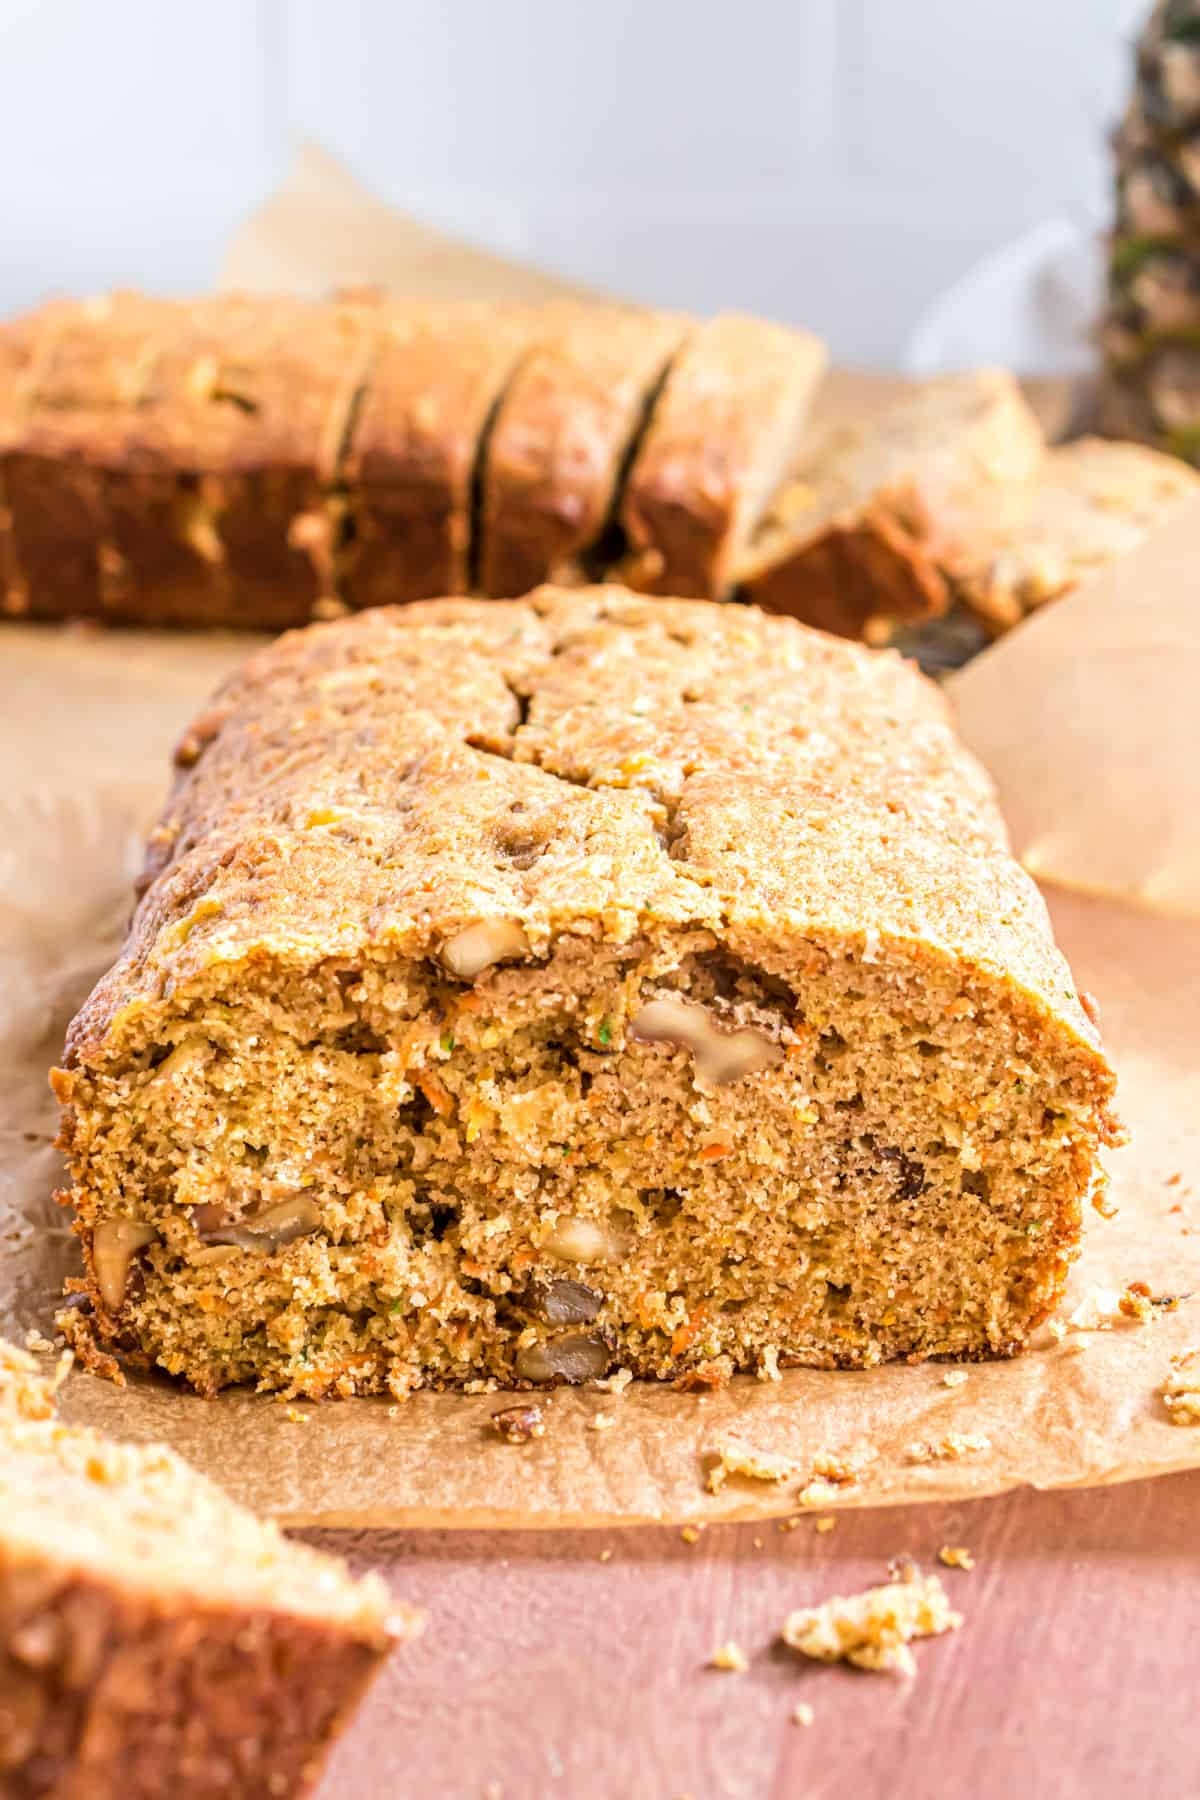 Loaf of zucchini bread with carrots and pineapple.